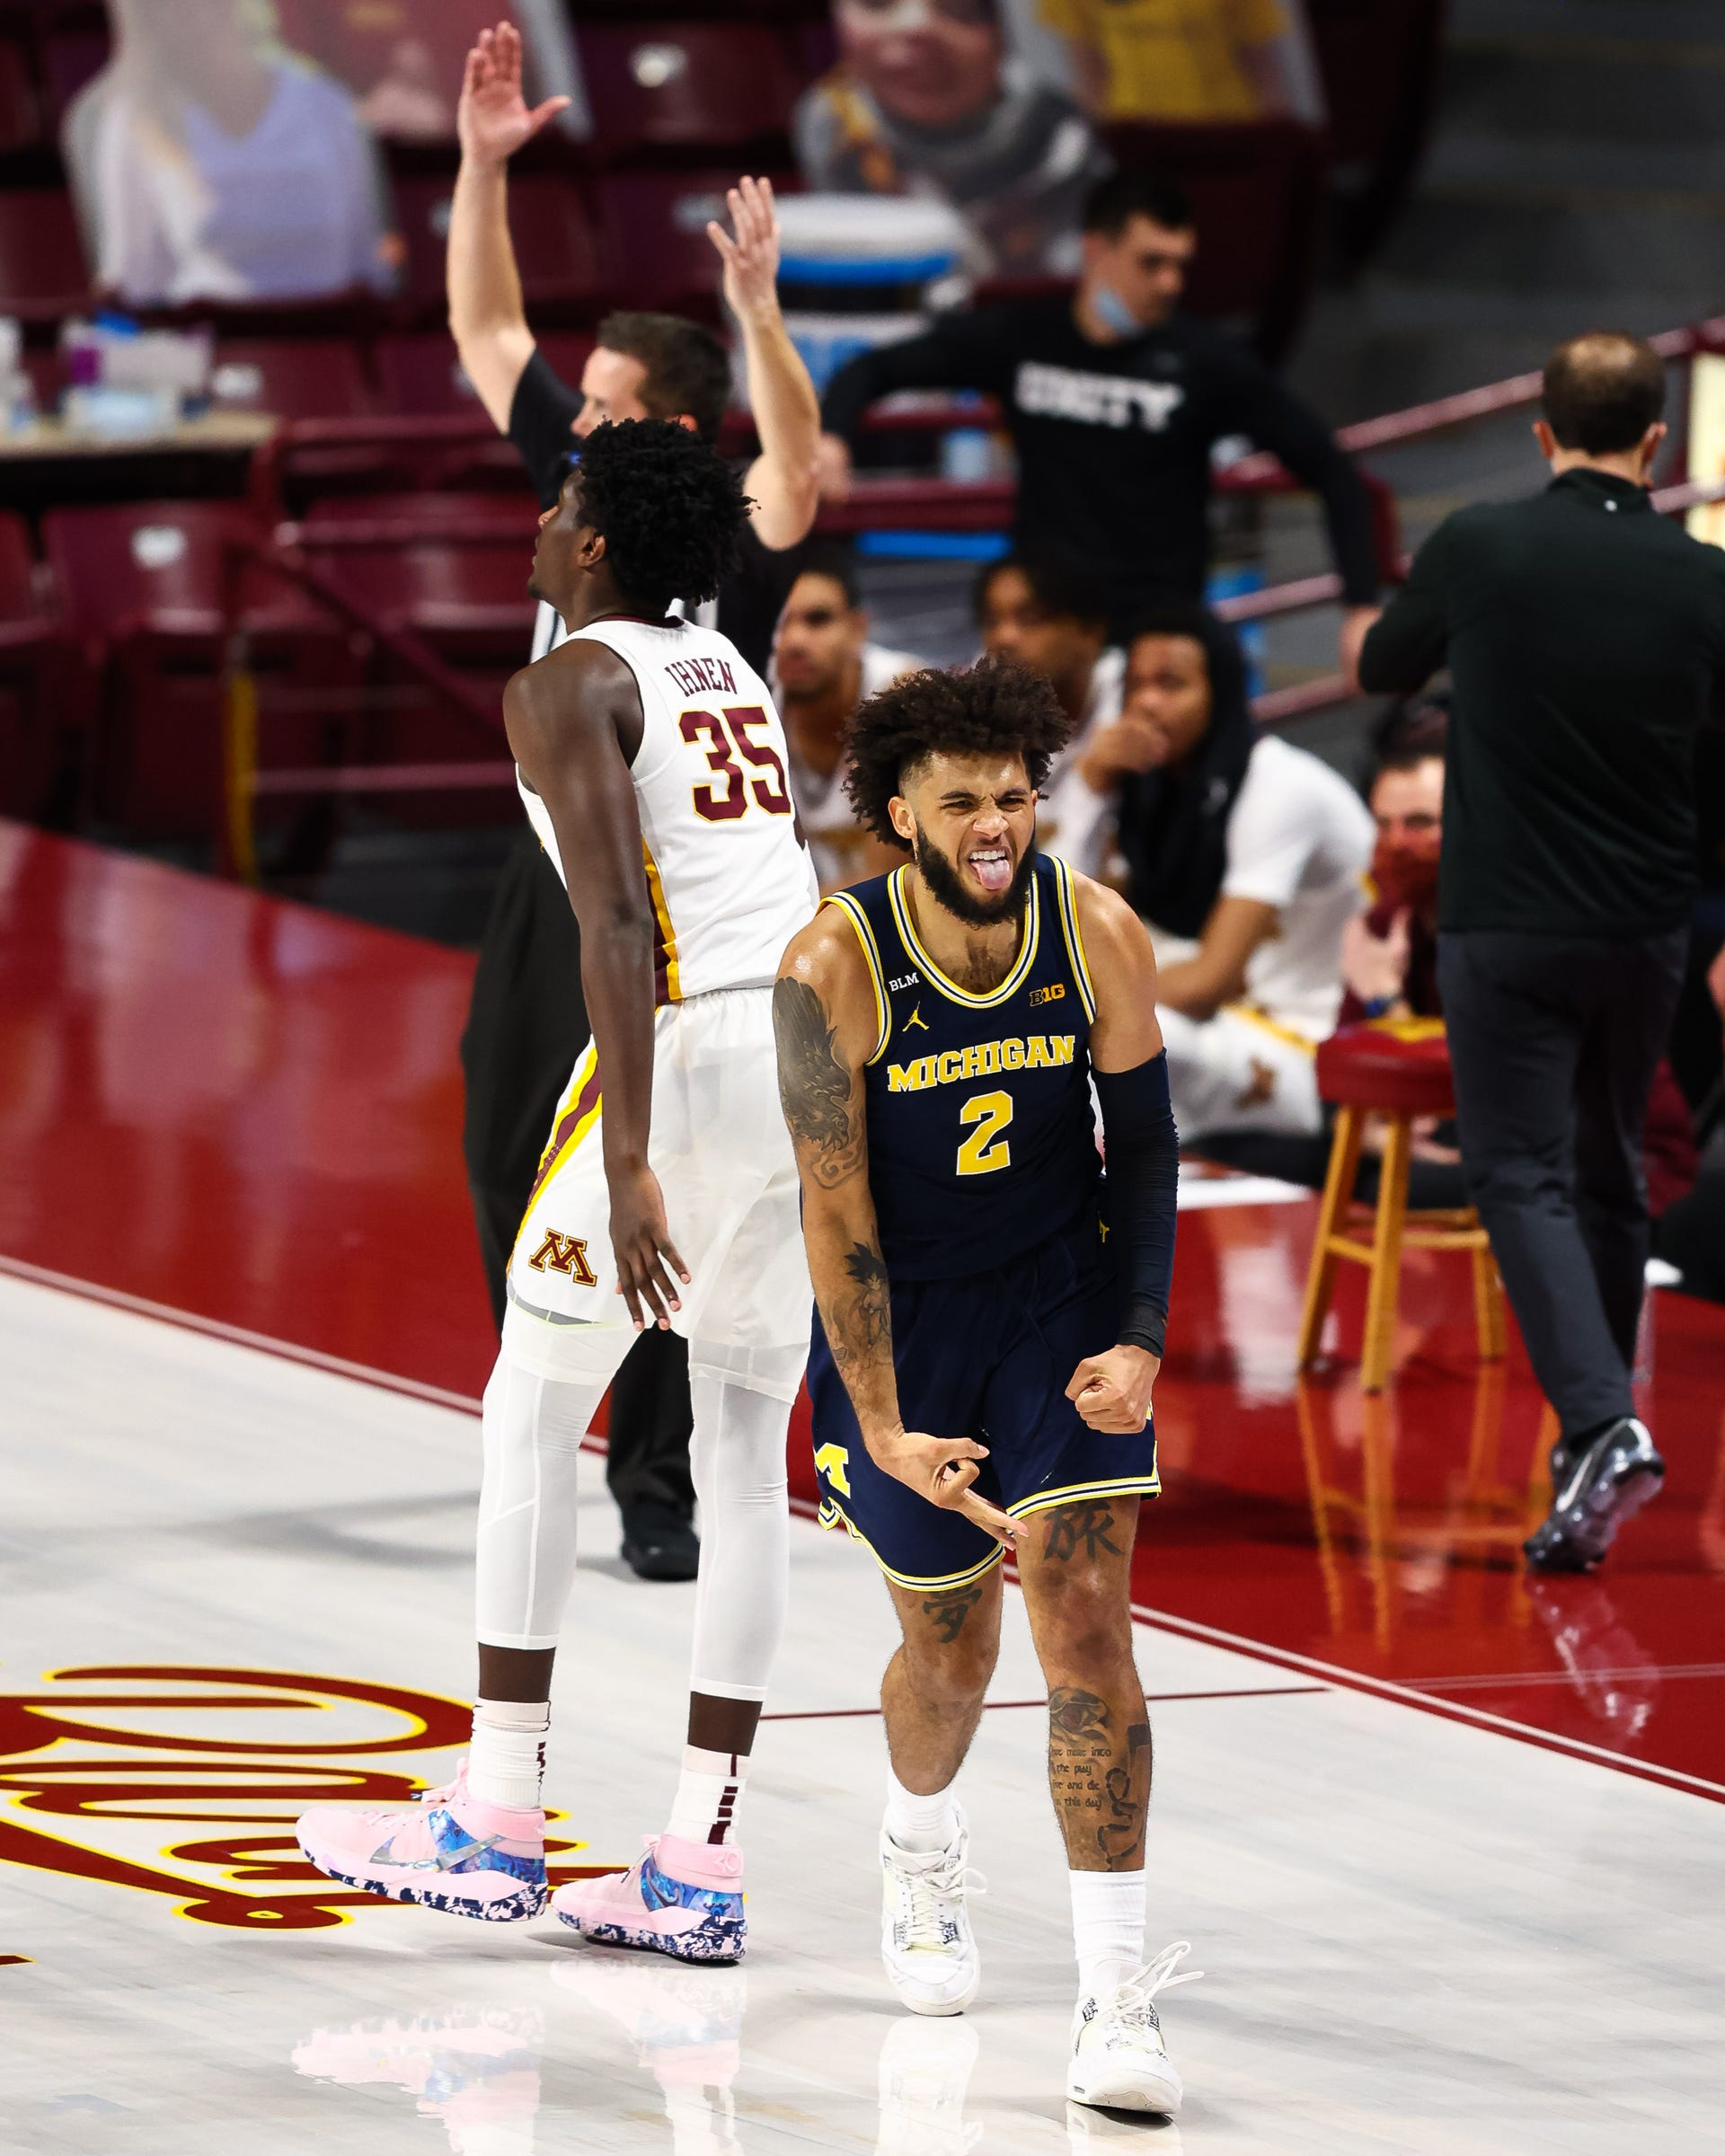 How will Michigan basketball respond after taking first loss of the season?